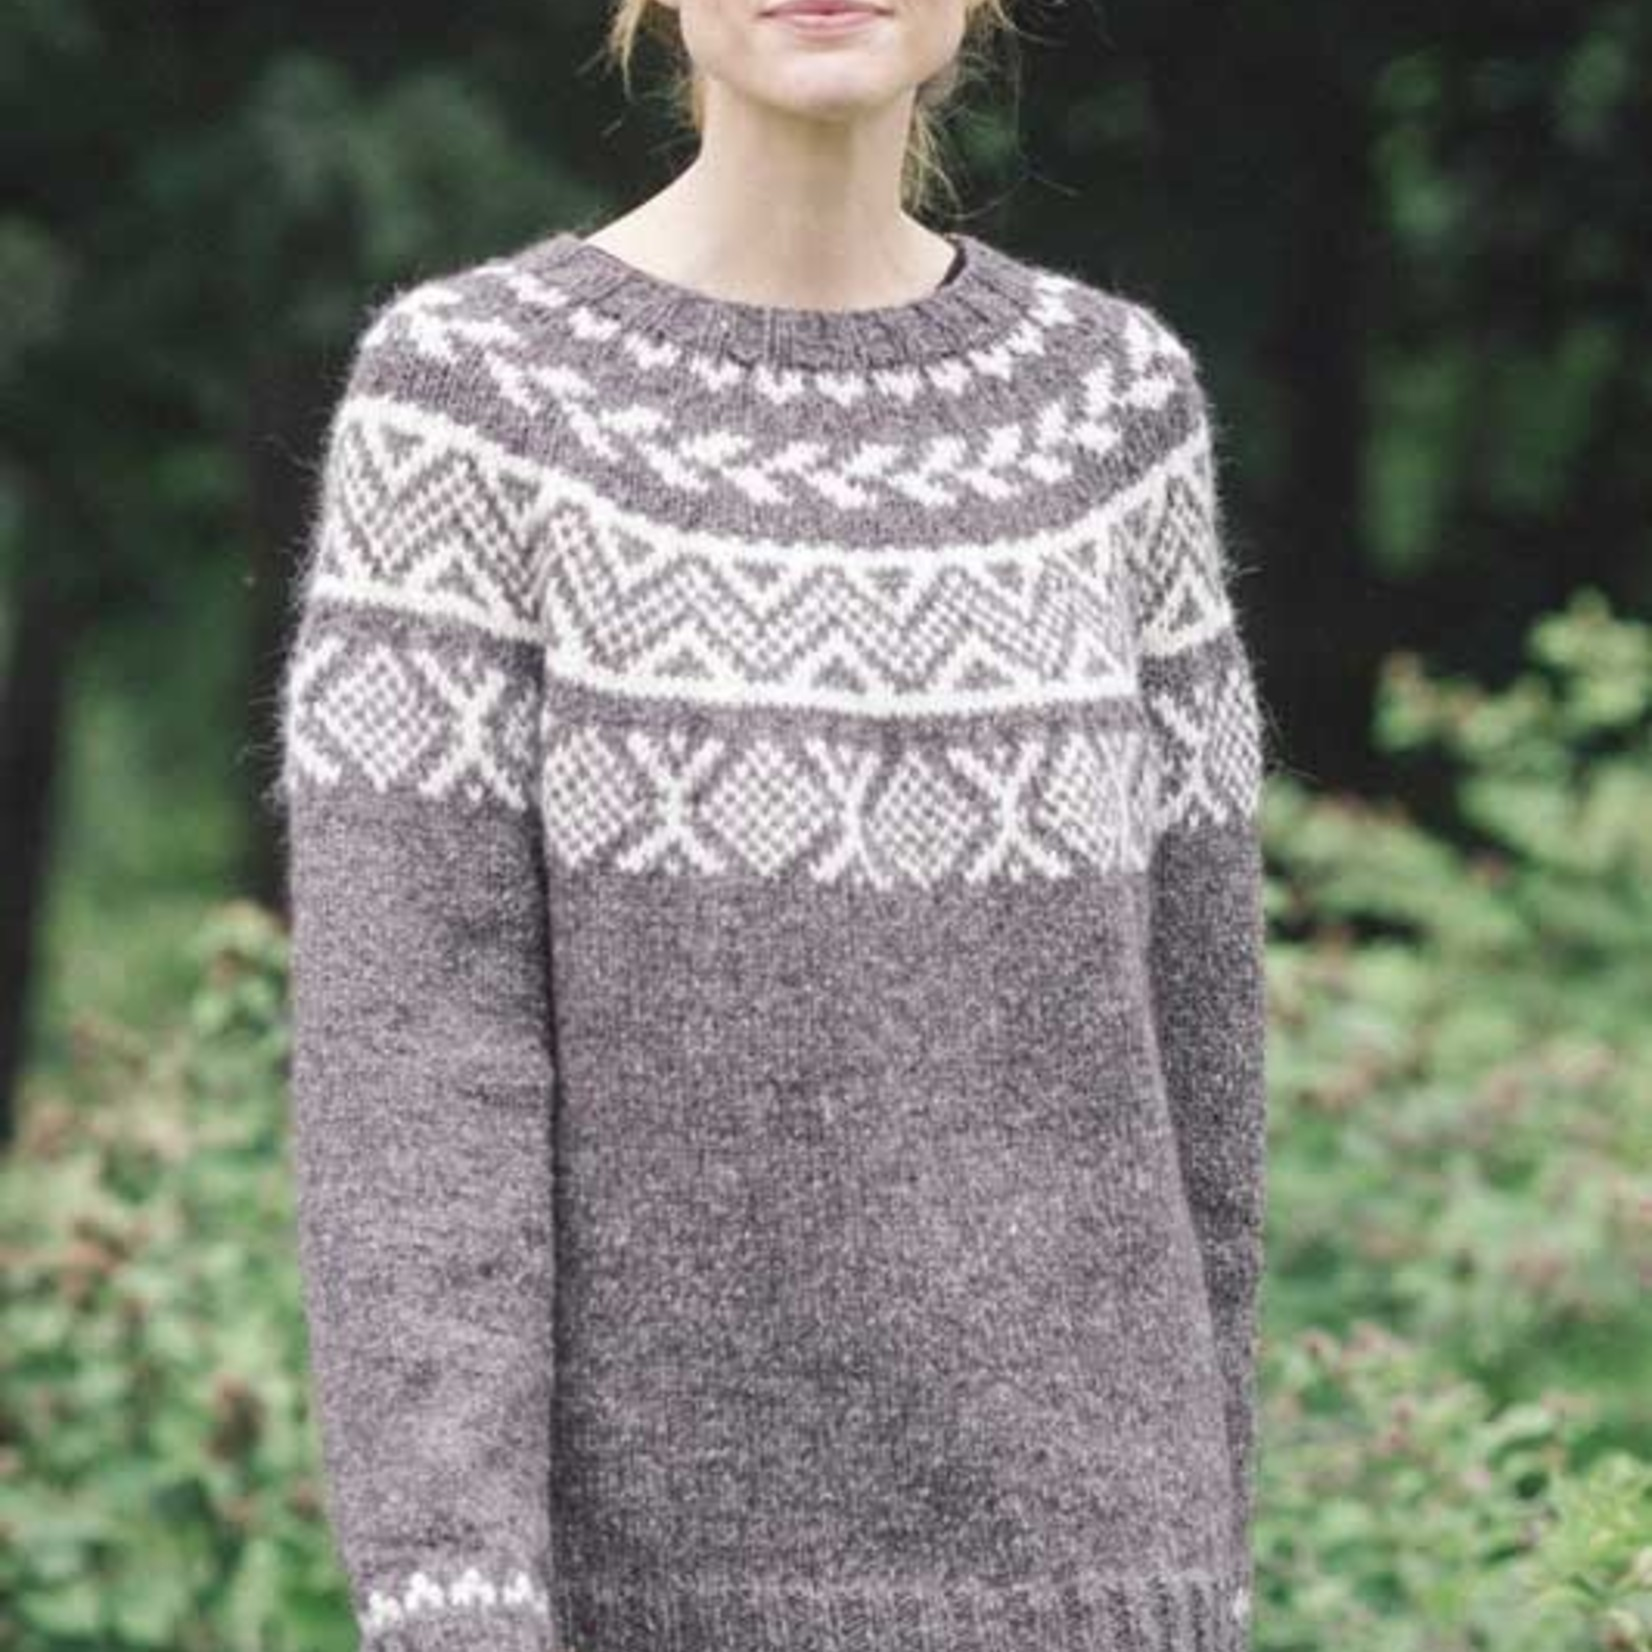 Pam Allen Plain & Simple: 11 Knits to Wear Every Day by Pam Allen